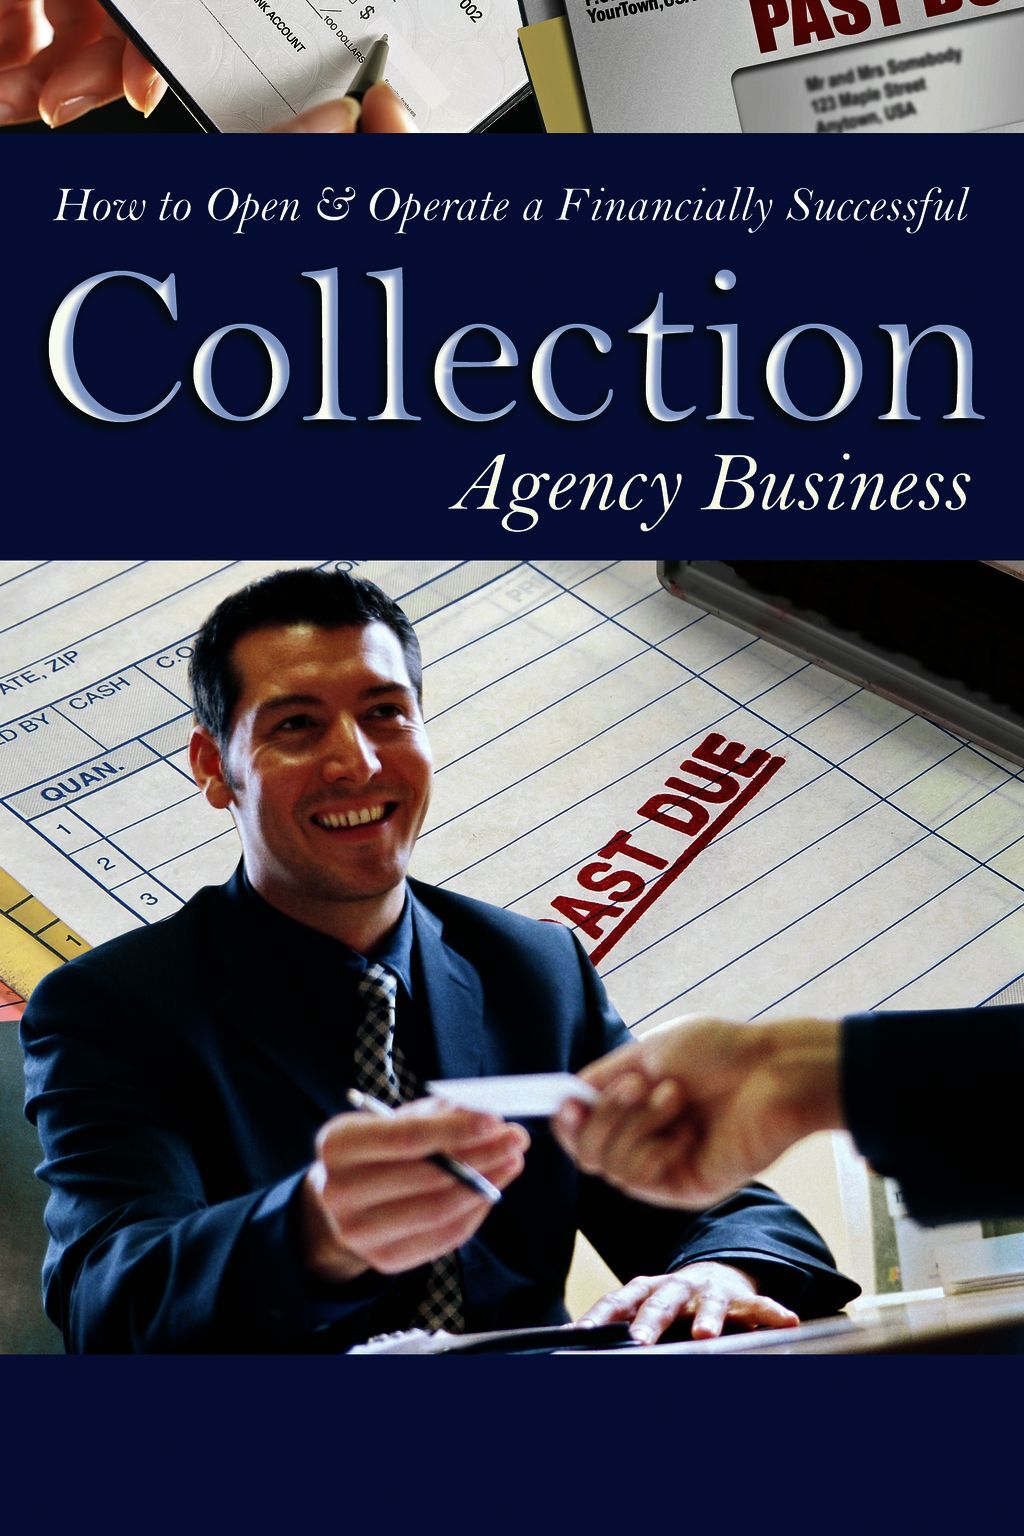 How To Open & Operate A Financially Successful Collection Agency Business